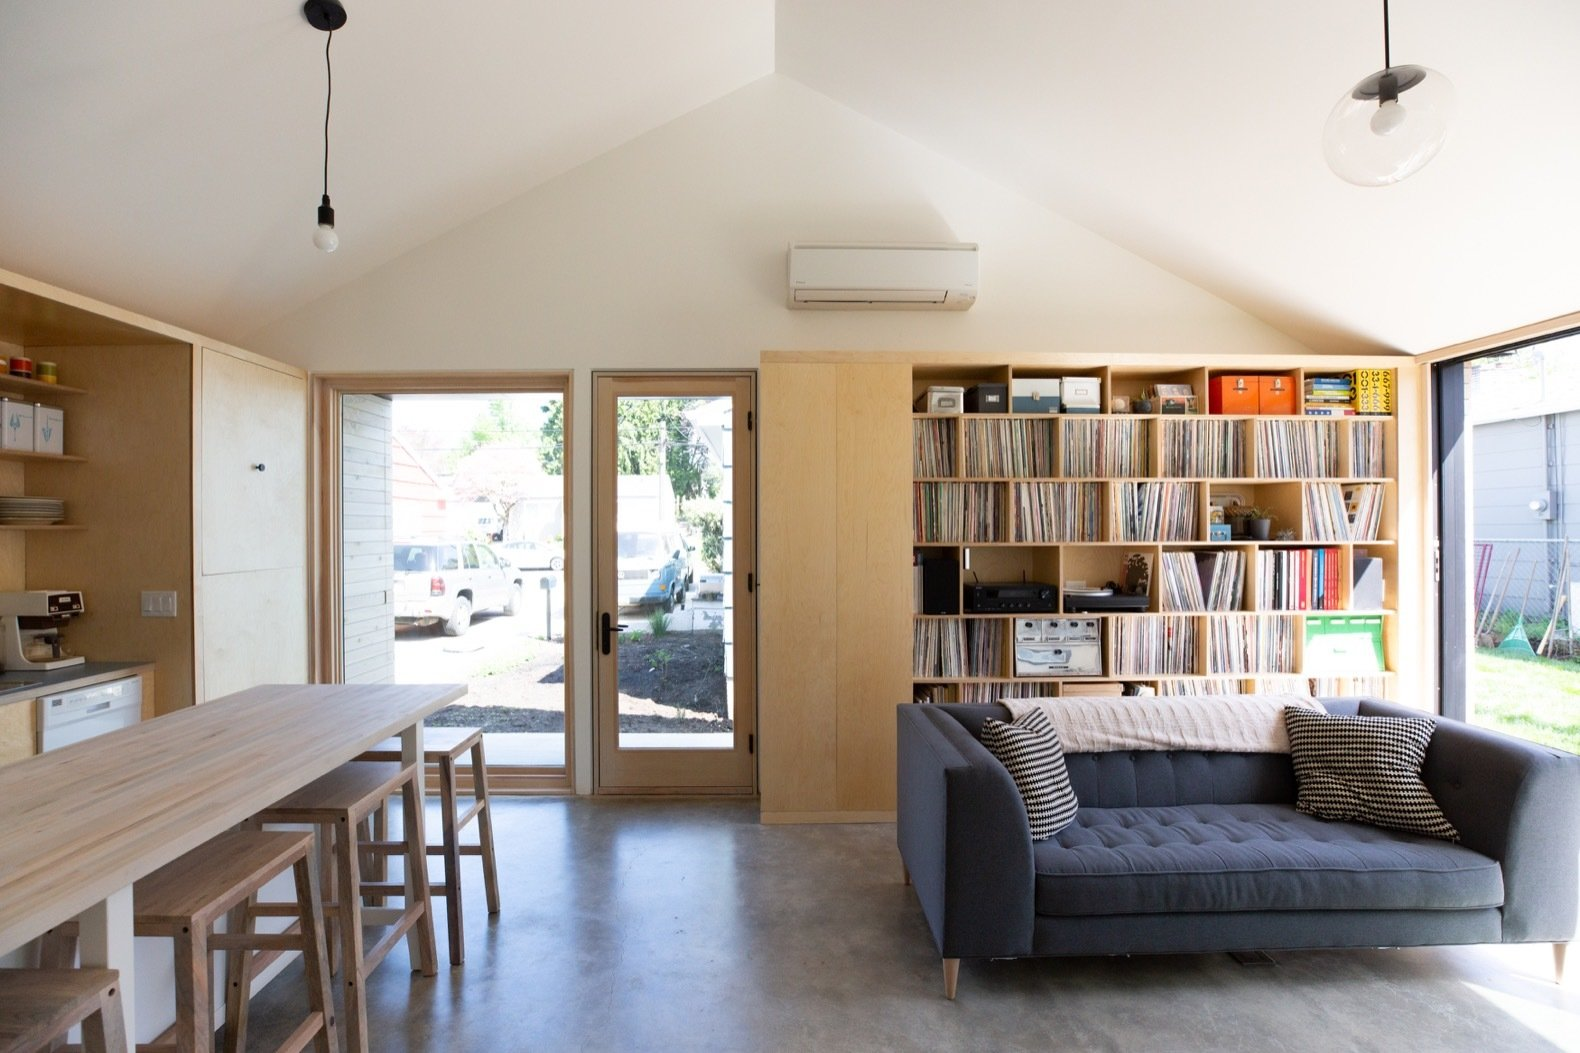 Living, Concrete, Bookcase, Sofa, Storage, Pendant, and Stools A highly efficient ductless mini-split system provides heating and cooling.  Best Living Storage Stools Photos from Budget Breakdown: A Portland Couple Design and Build a Compact Home For $222K